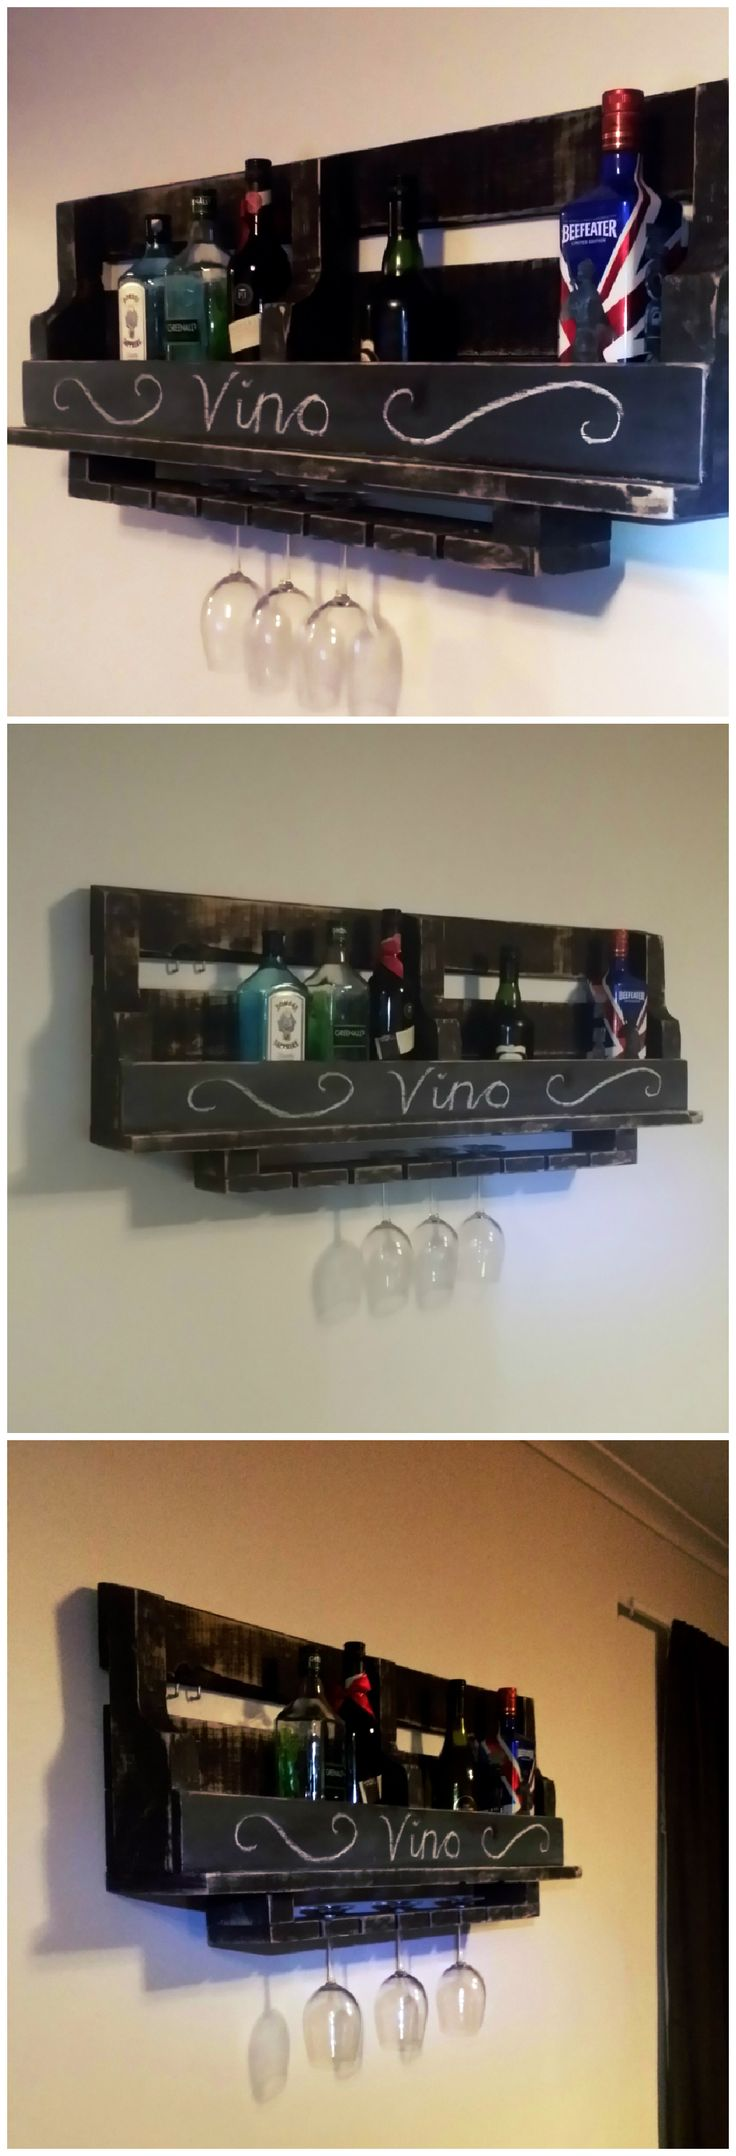 Rustic Wine Rack. I stained it black then sanded it back. I used chalkboard paint on the front so it can be easily personalized. Sanding it really gave it an awesome look